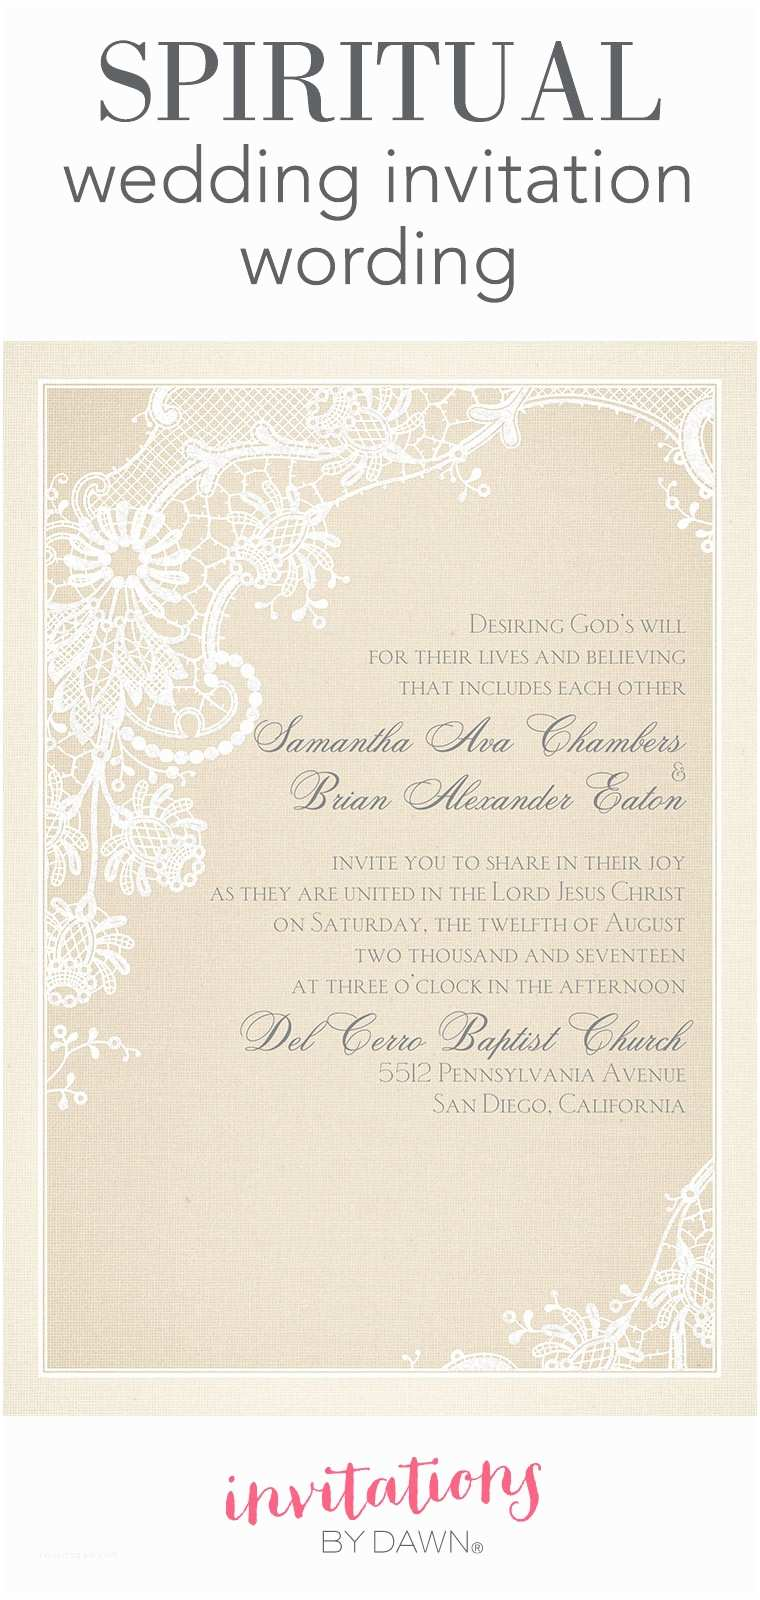 What to Include In Wedding Invitation Spiritual Wedding Invitation Wording